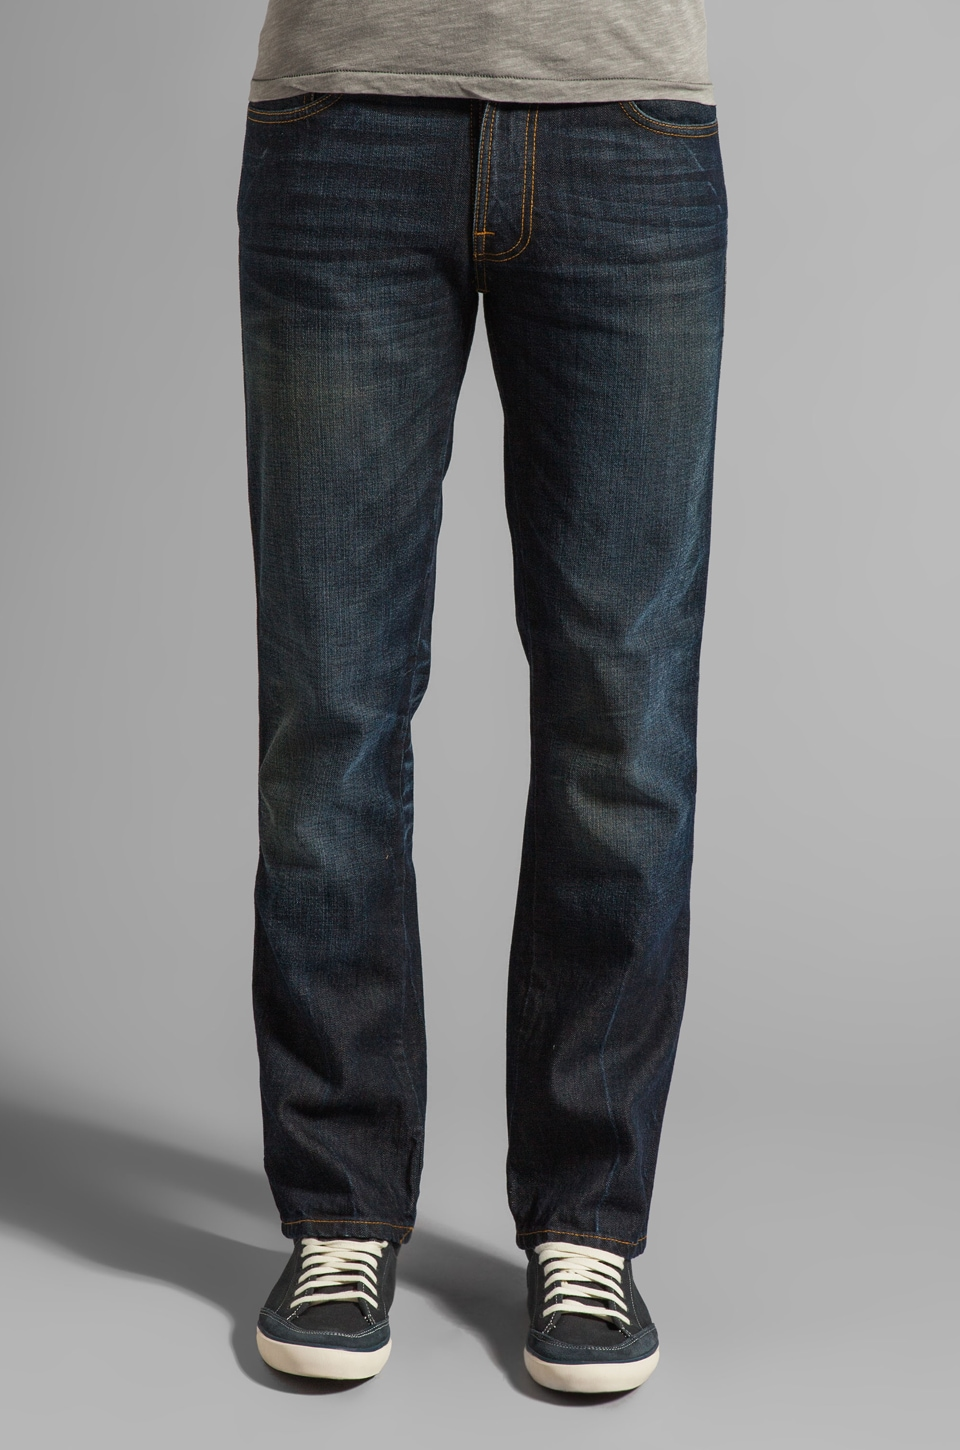 Nudie Jeans Slim Jim in Org. Winter Shades